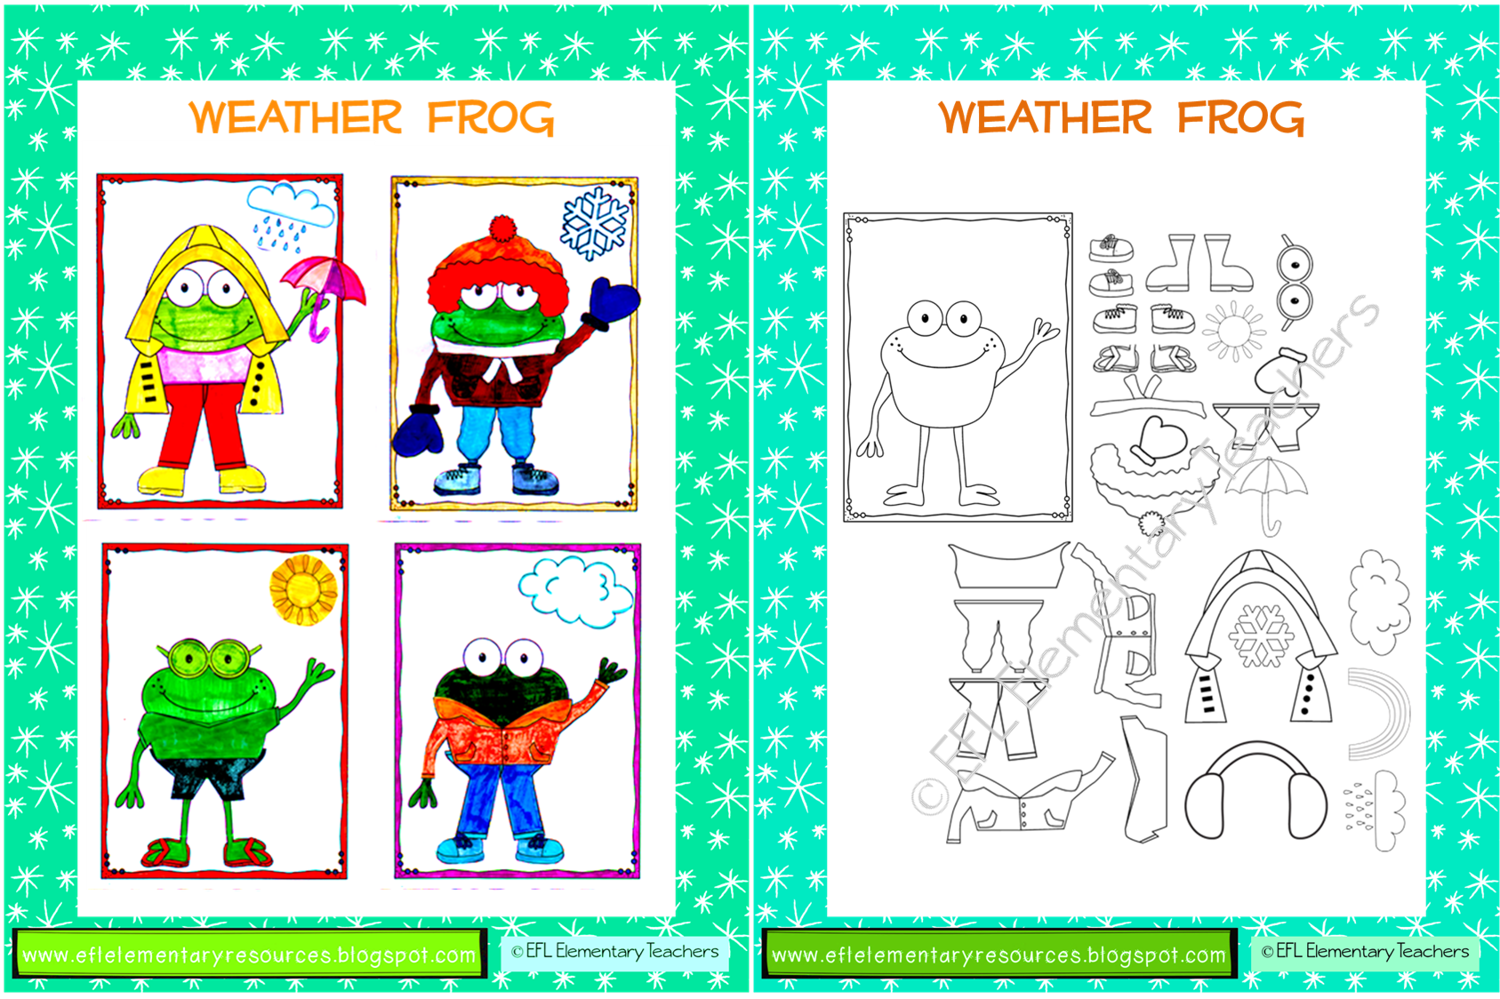 Efl Elementary Teachers More Clothes Theme Resources And